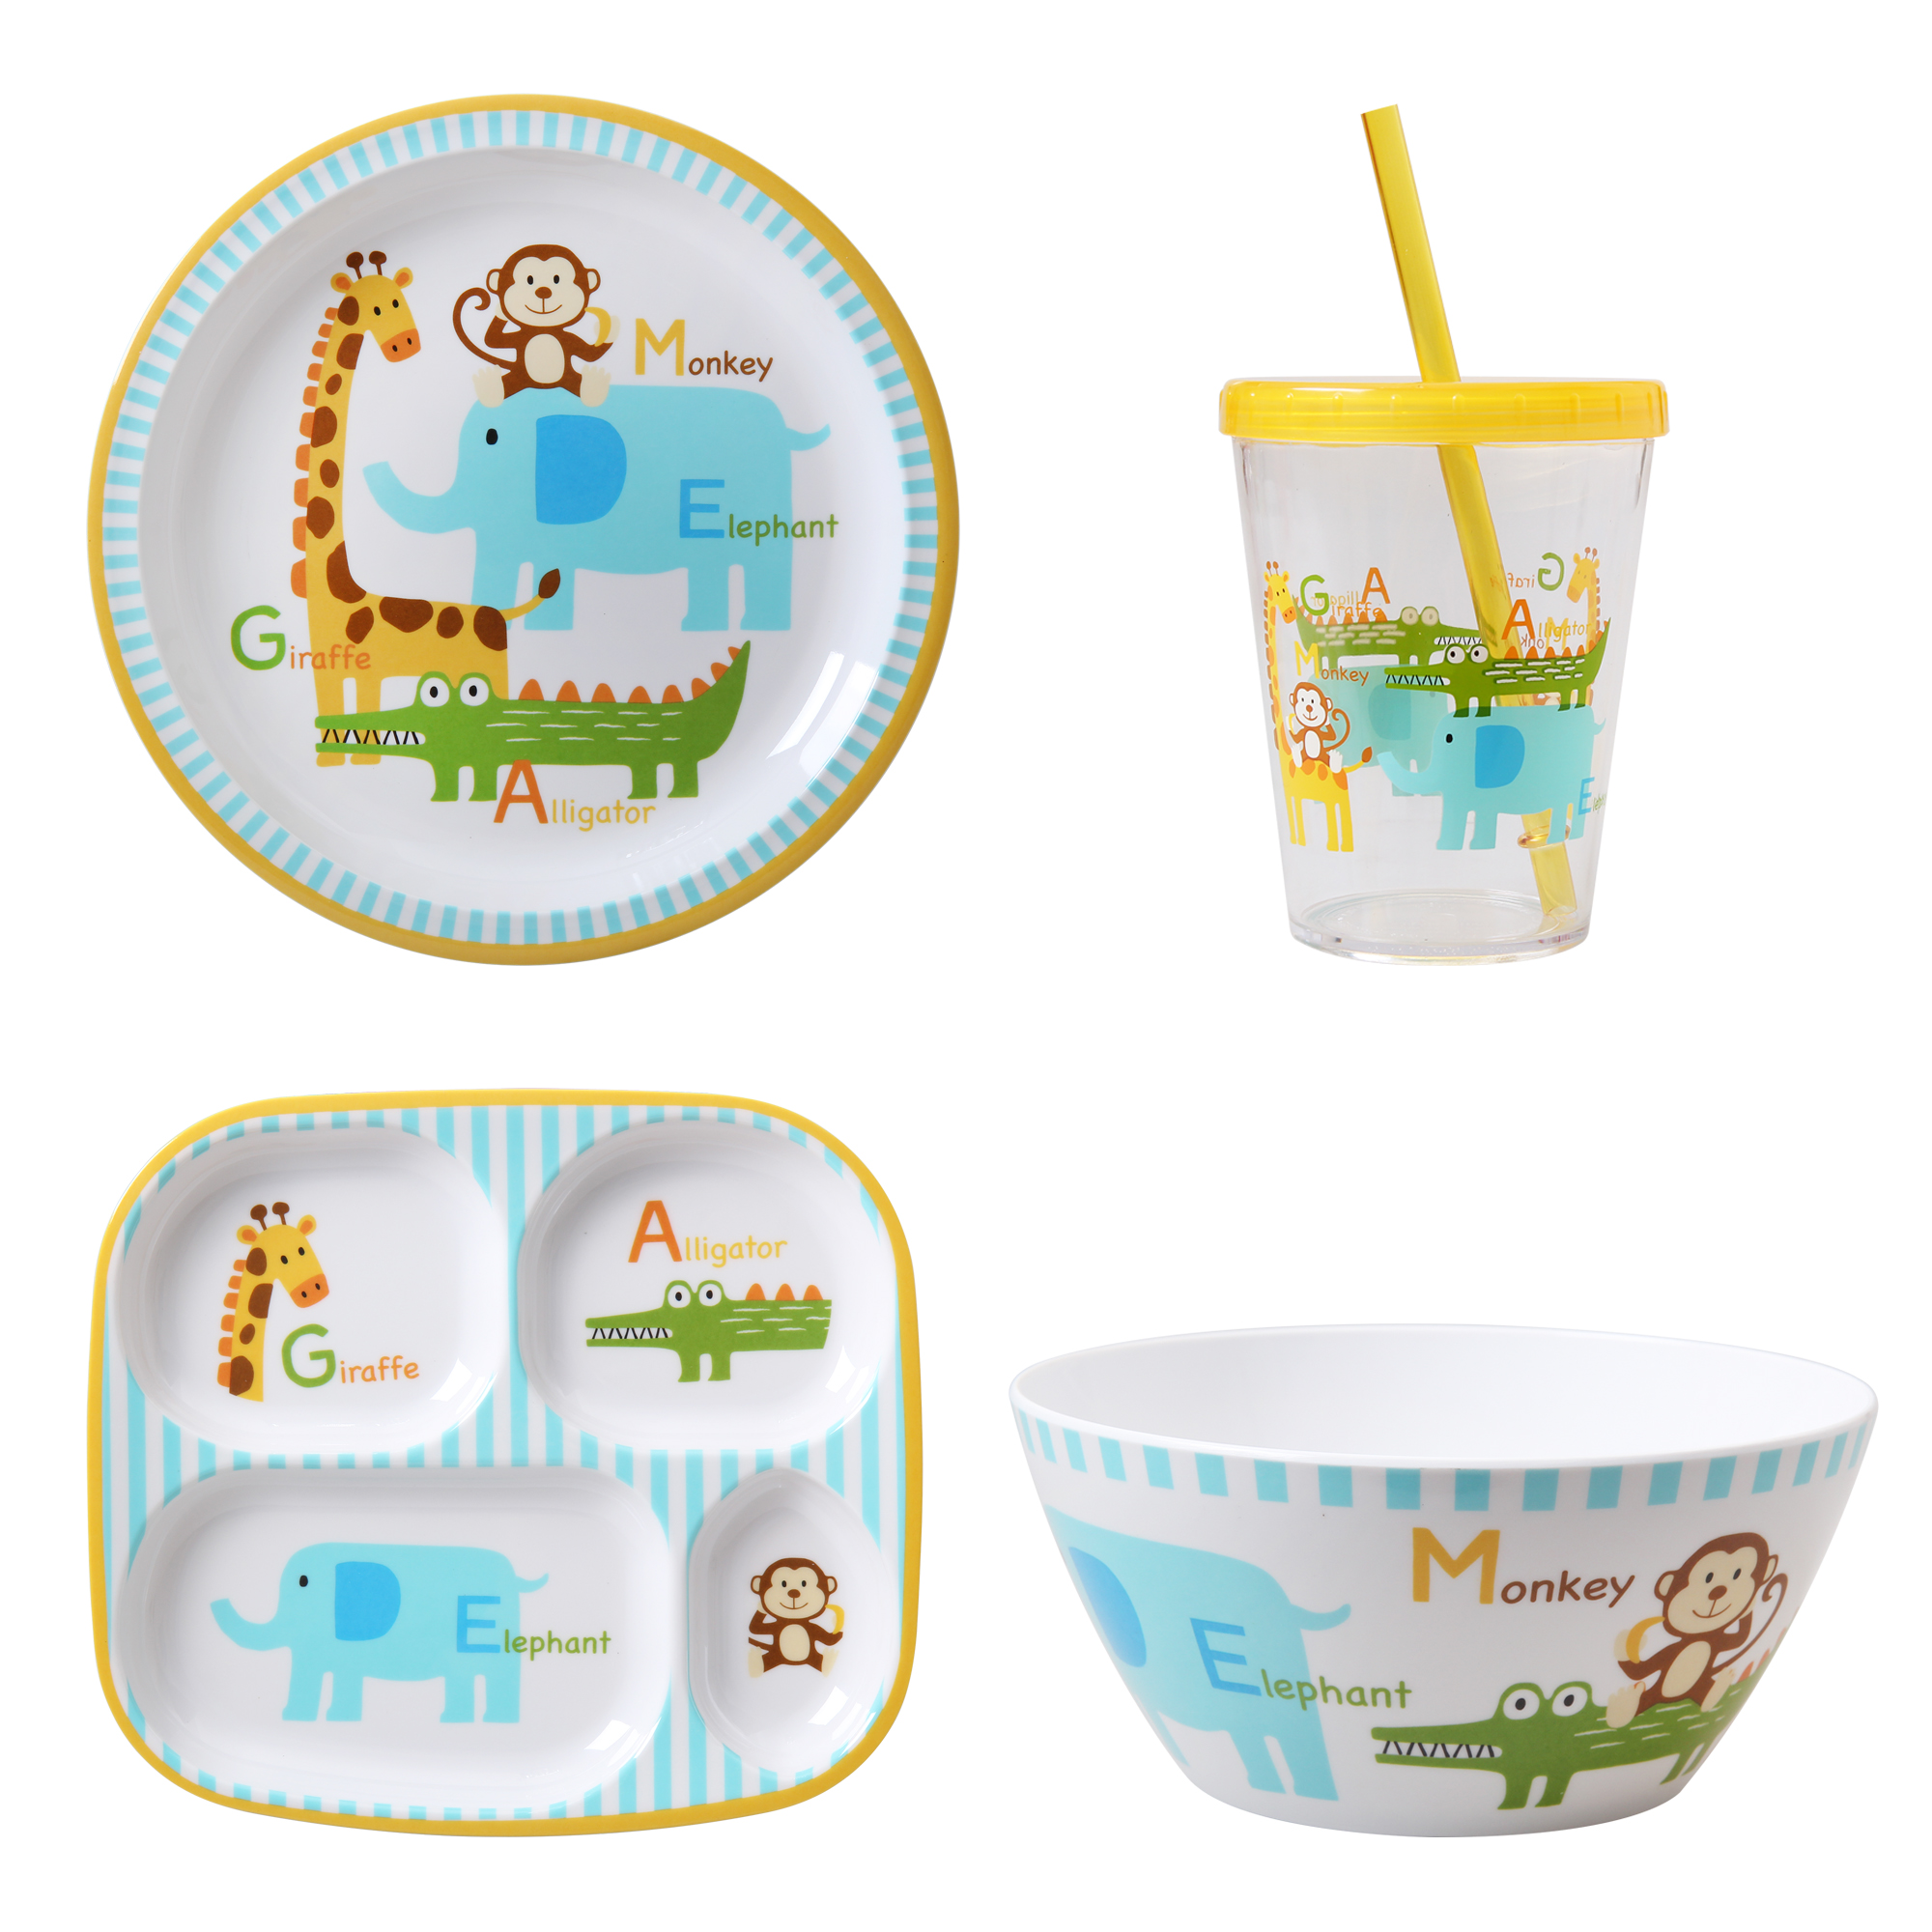 Mainstays Kids 4-Pack Tabletop Set: includes 1 Plate, 1 Divided Plate, 1 Bowl, 1 Tumbler